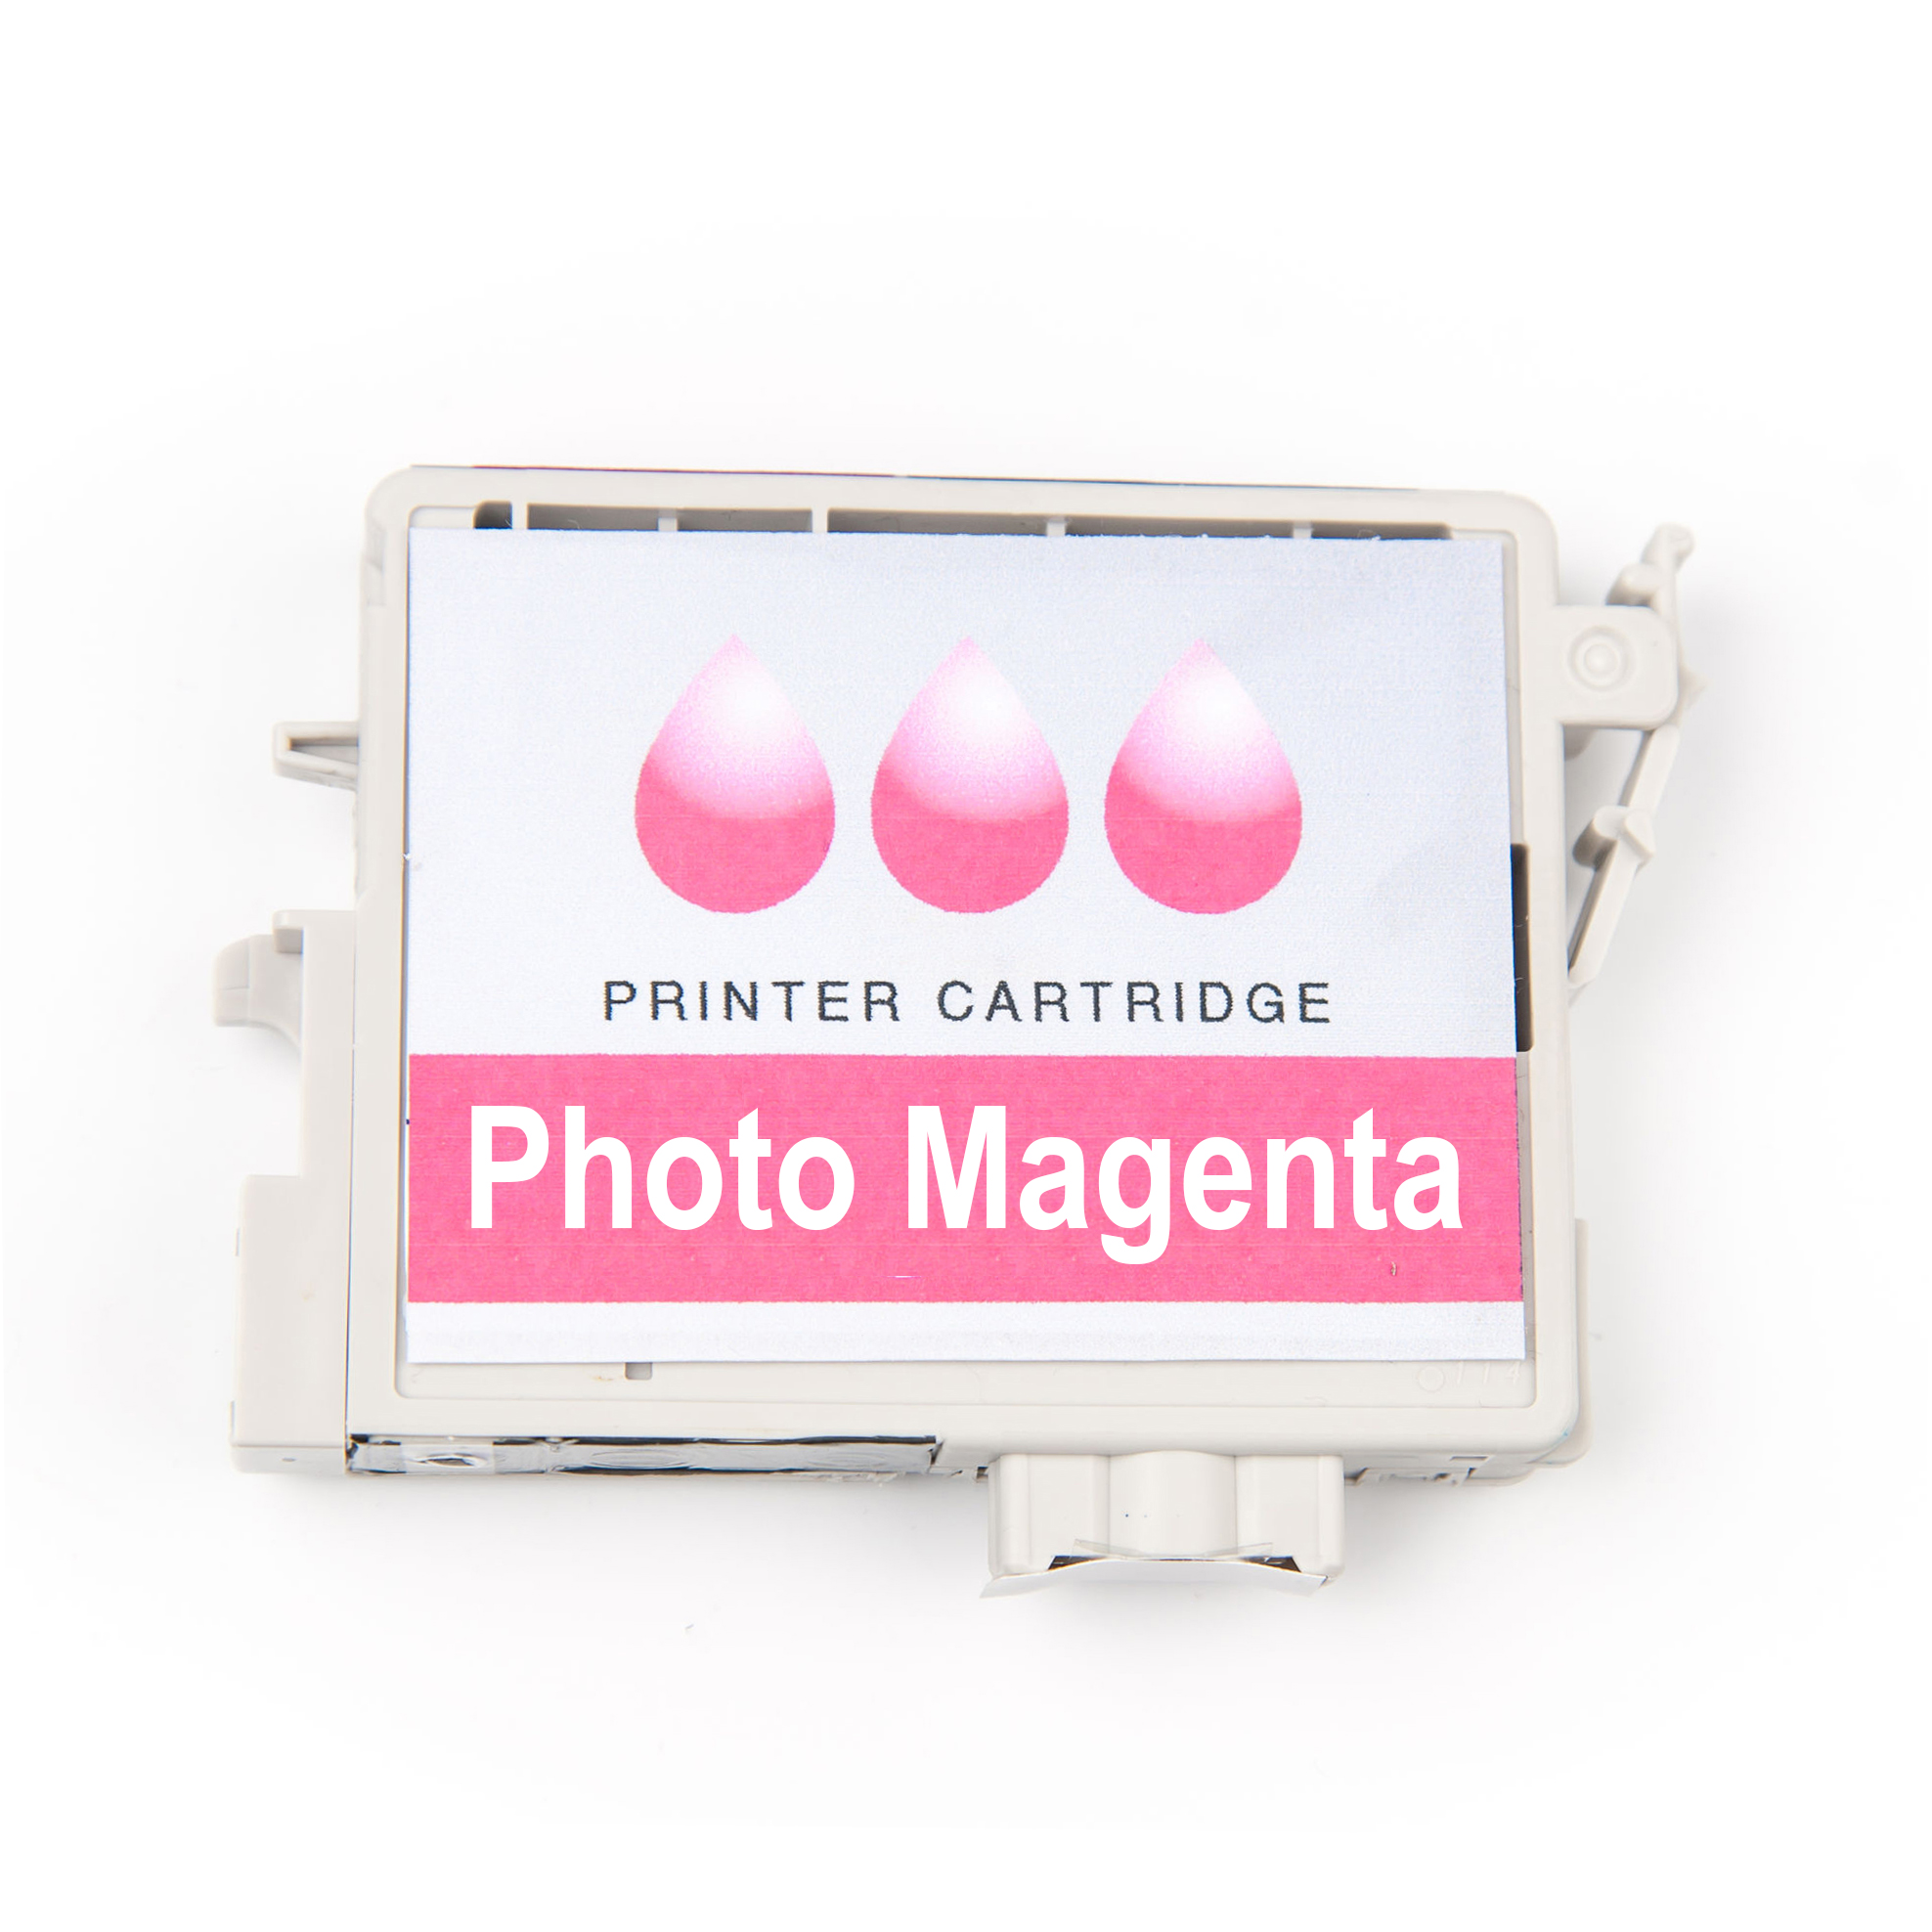 Cheap canon business card printer cx 350 ink cartridges business card printer cx 350 original canon 8137a002 bjip300lm ink cartridge bright magenta reheart Image collections